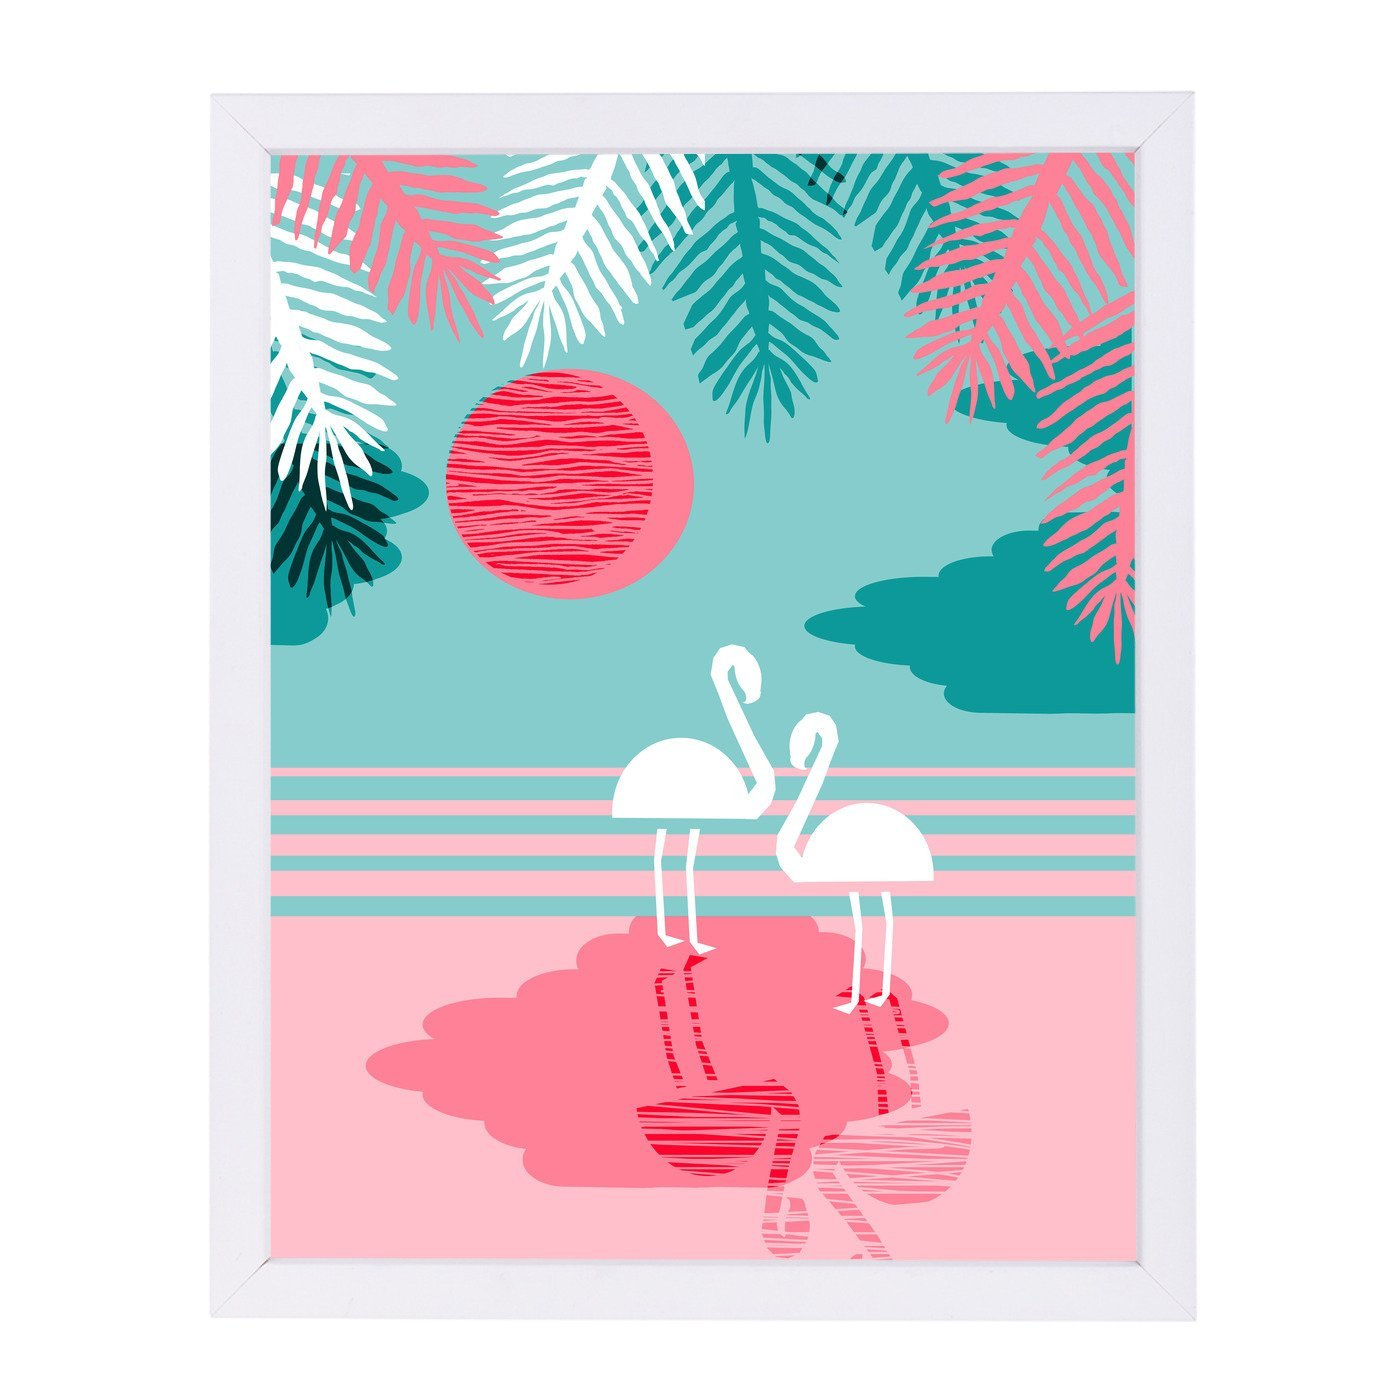 Chill Vibes by Wacka Designs Framed Print - Americanflat